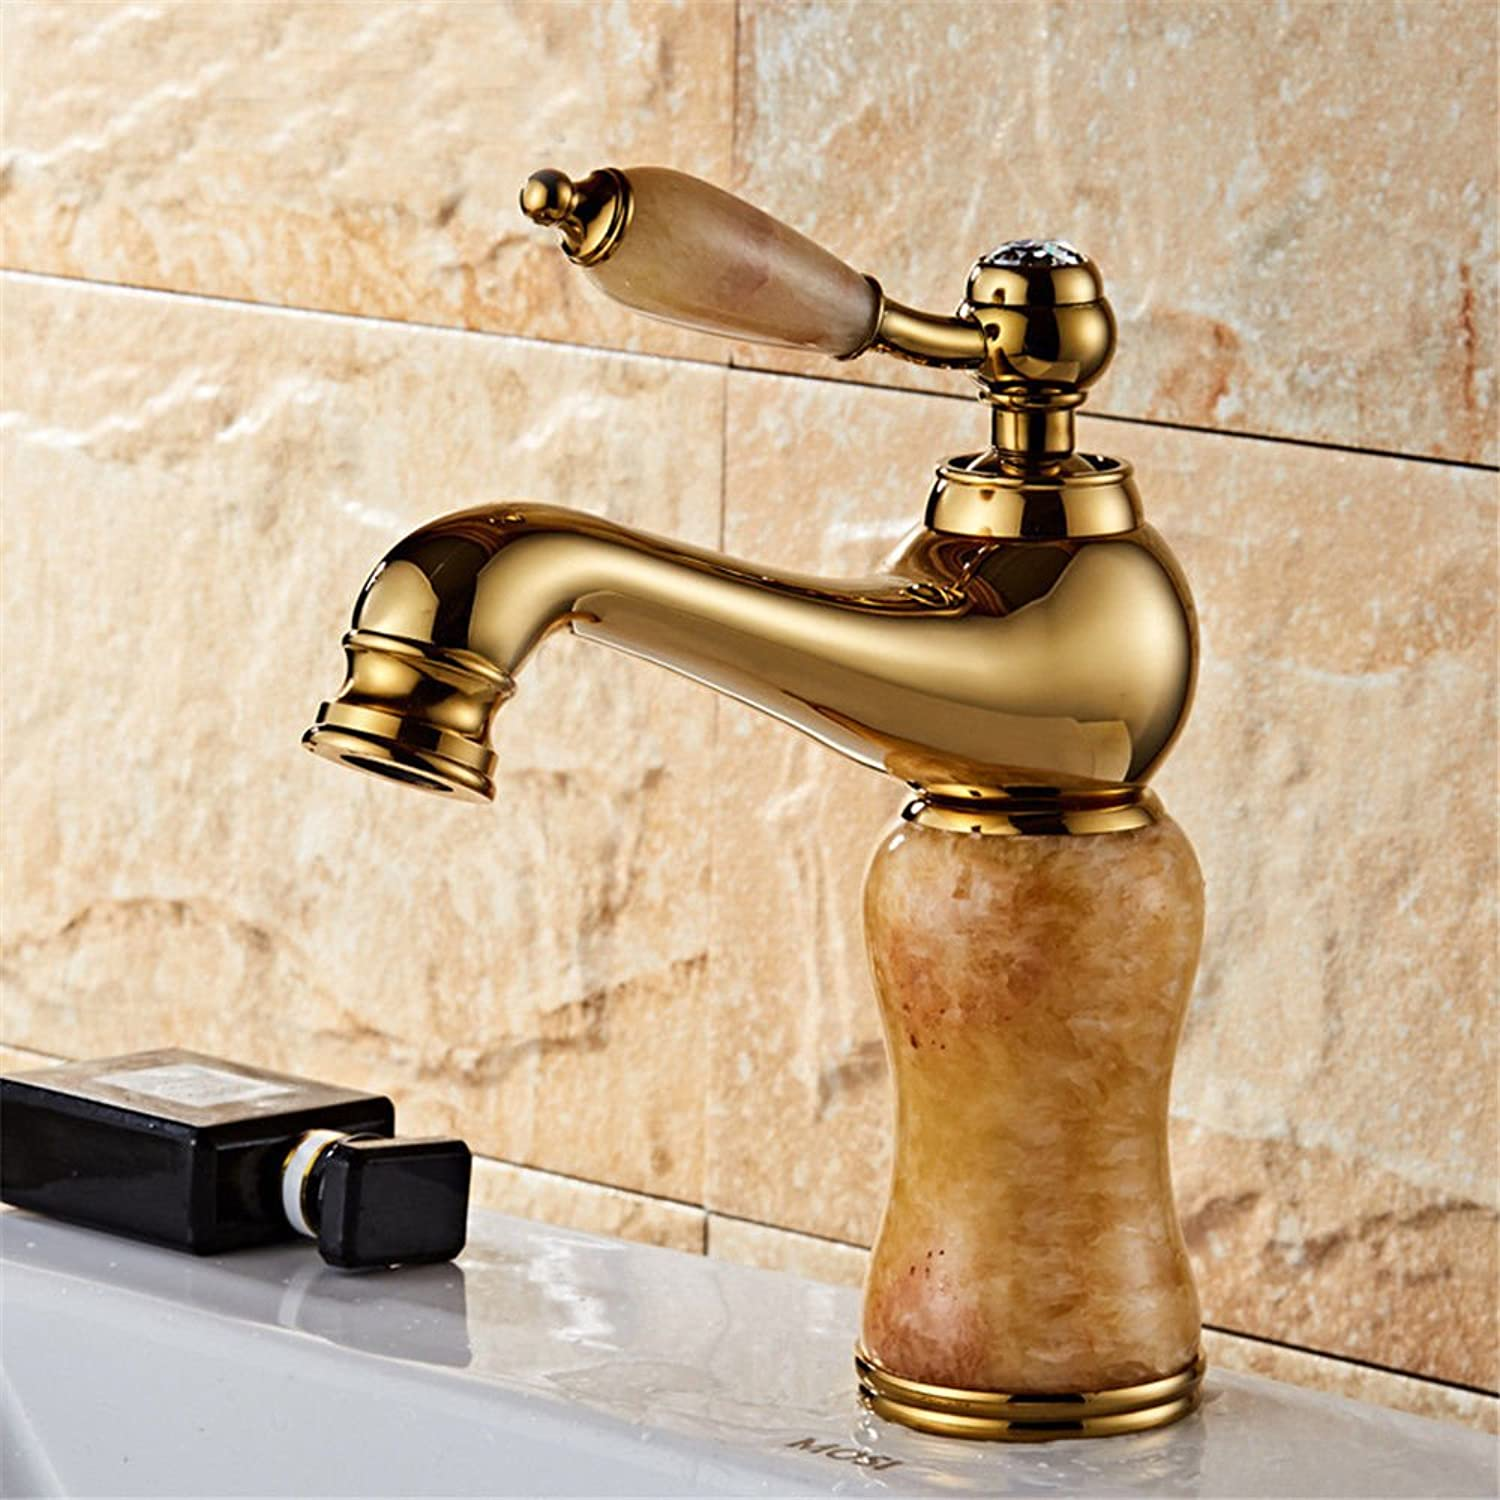 Good quality Antique Basin Sink Mixer Tap Bathroom basin faucet copper bathroom single-connected quick-open faucet household above counter basin hot and cold water mixer